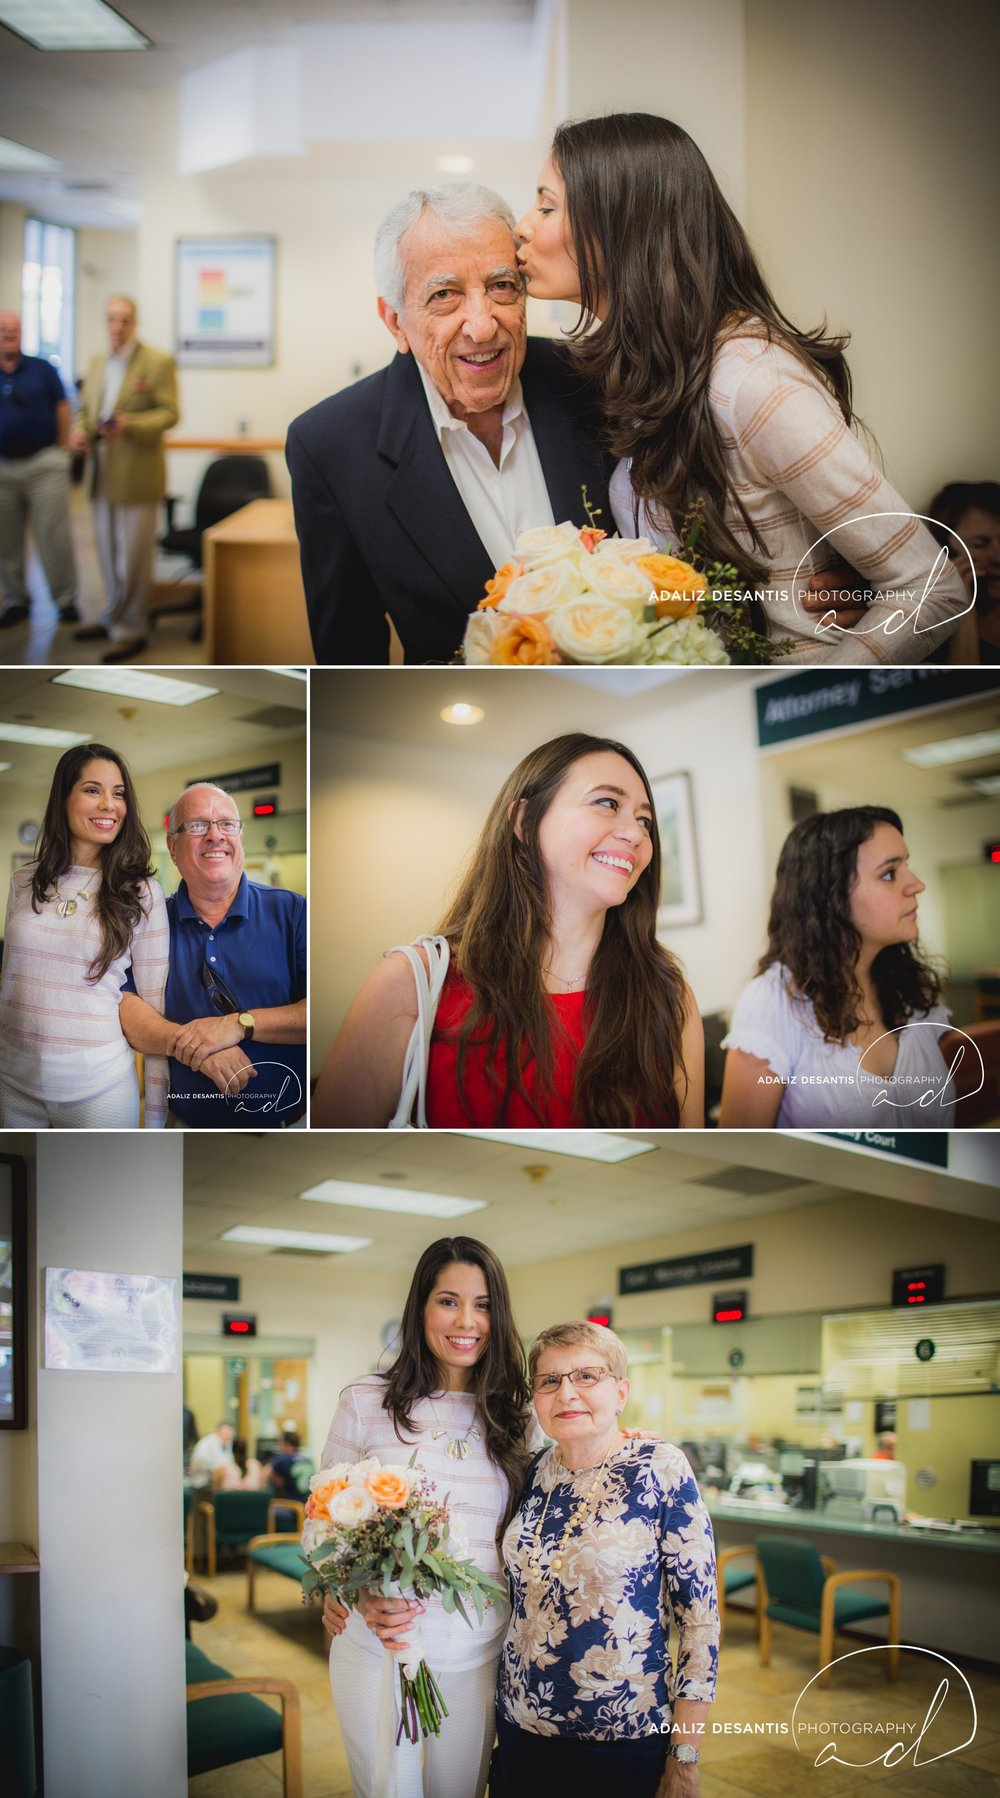 plymouth-congregational-church-coconut-grove-miami-elopement-matrimonio-civil-coral-gables 3.jpg